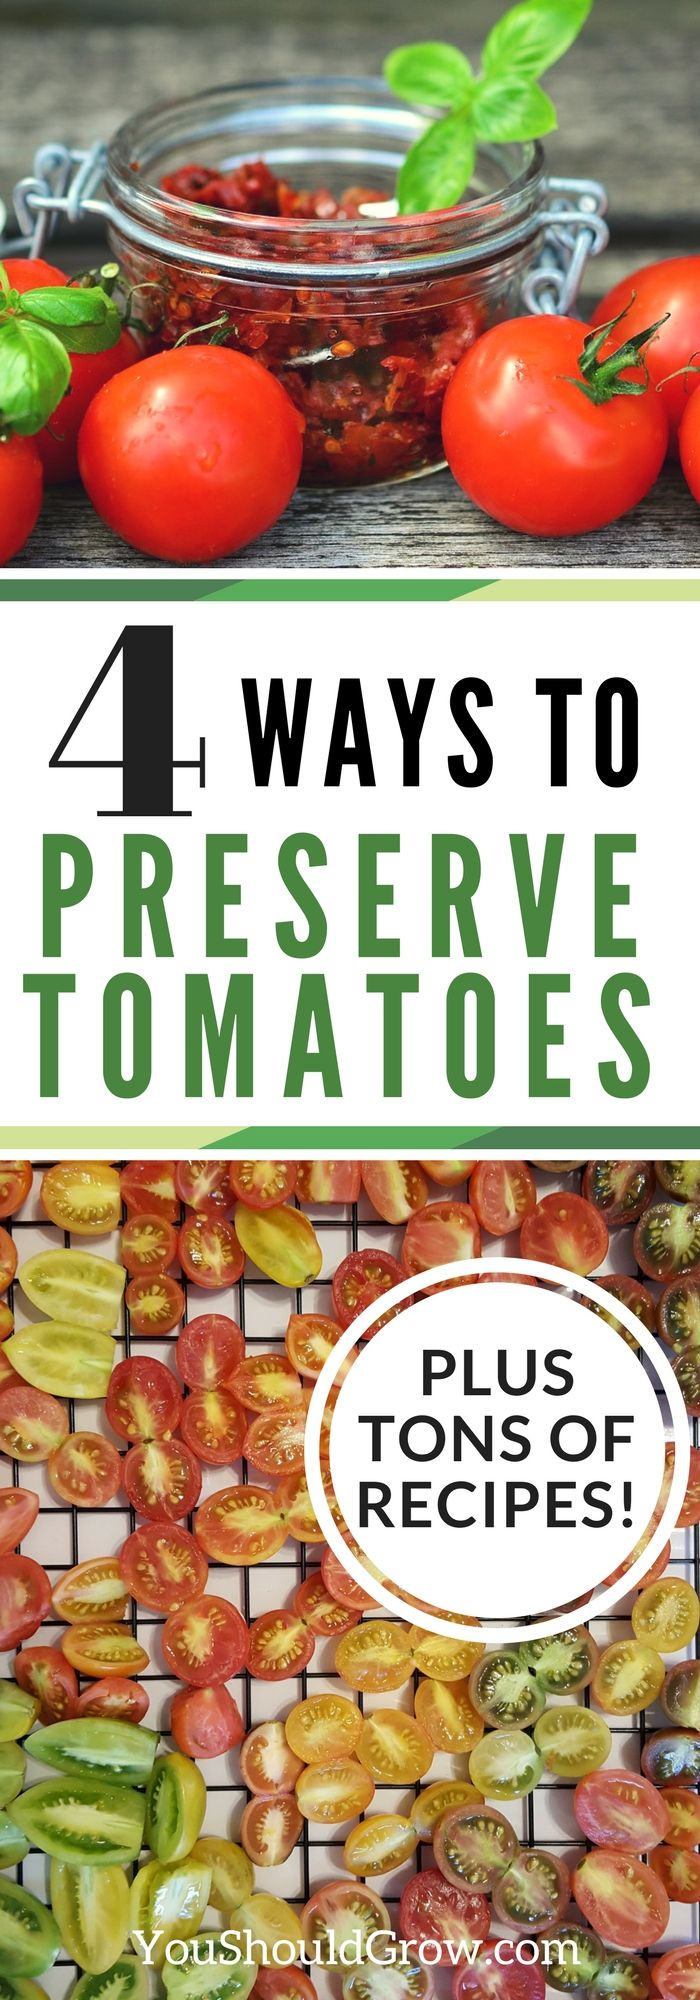 Do you have more tomatoes from the garden than you can eat? Find out how to preserve your crop so you never have to waste a garden fresh tomato again. Read to learn the 4 ways to preserve your tomatoes and tons of recipes to get you started. via @whippoorwillgar